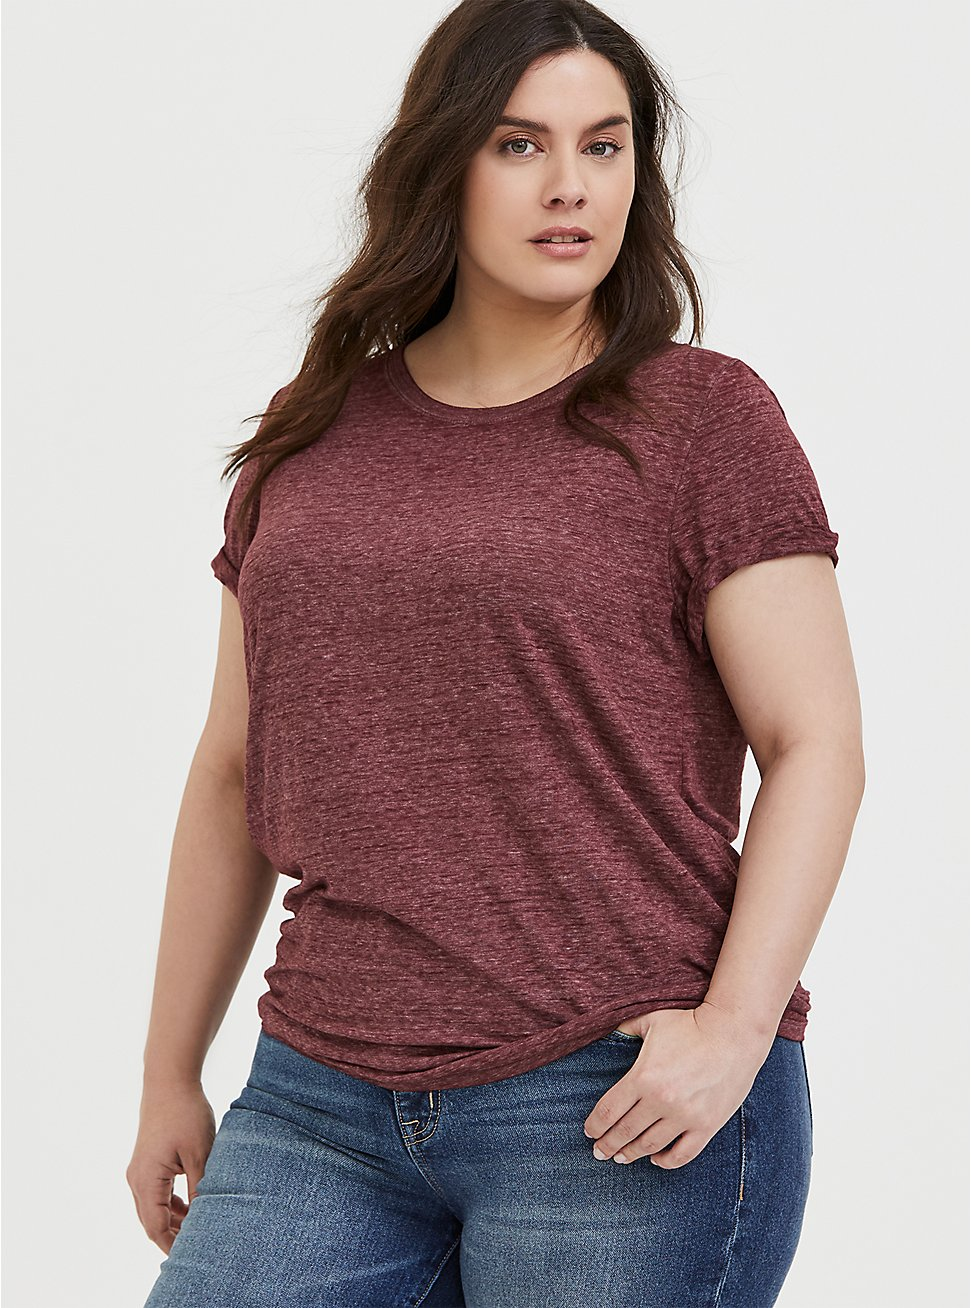 Classic Fit Crew Tee - Vintage Burnout Burgundy Purple , WINETASTING, hi-res